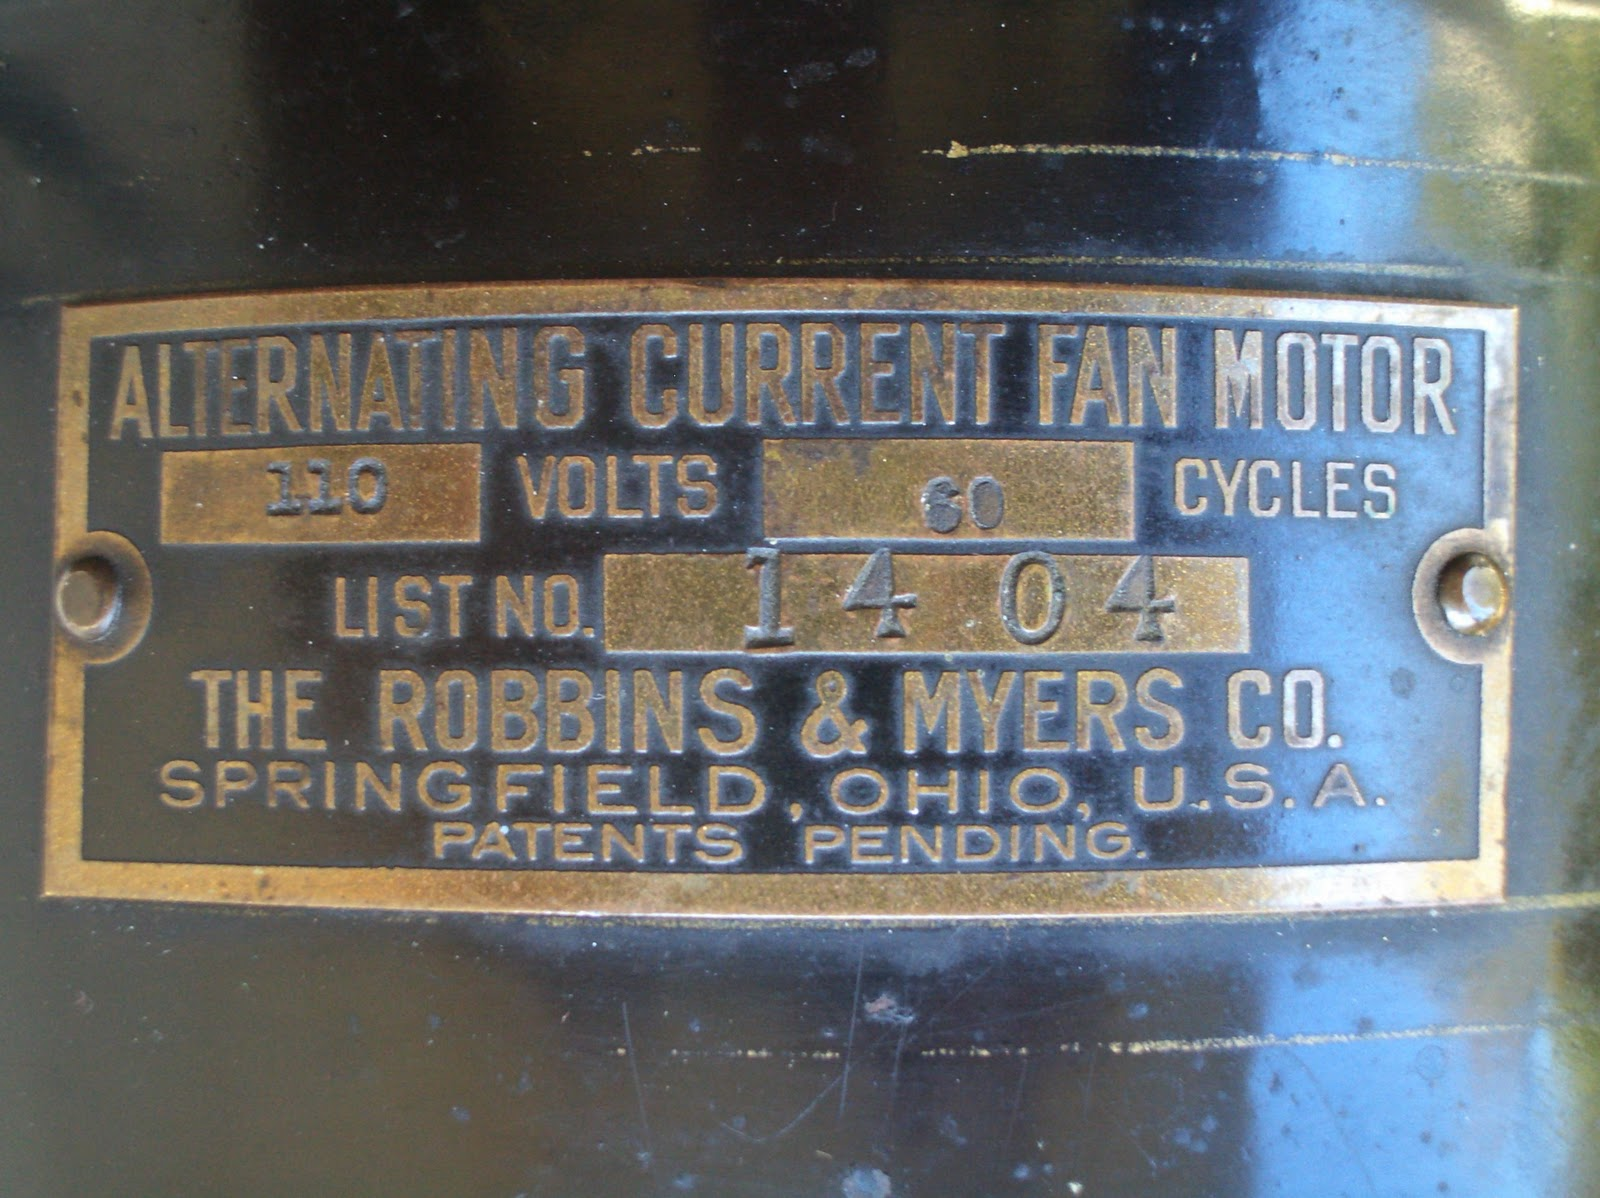 If there were patents pending they never were on the motor tags of these  fans as an actual date.